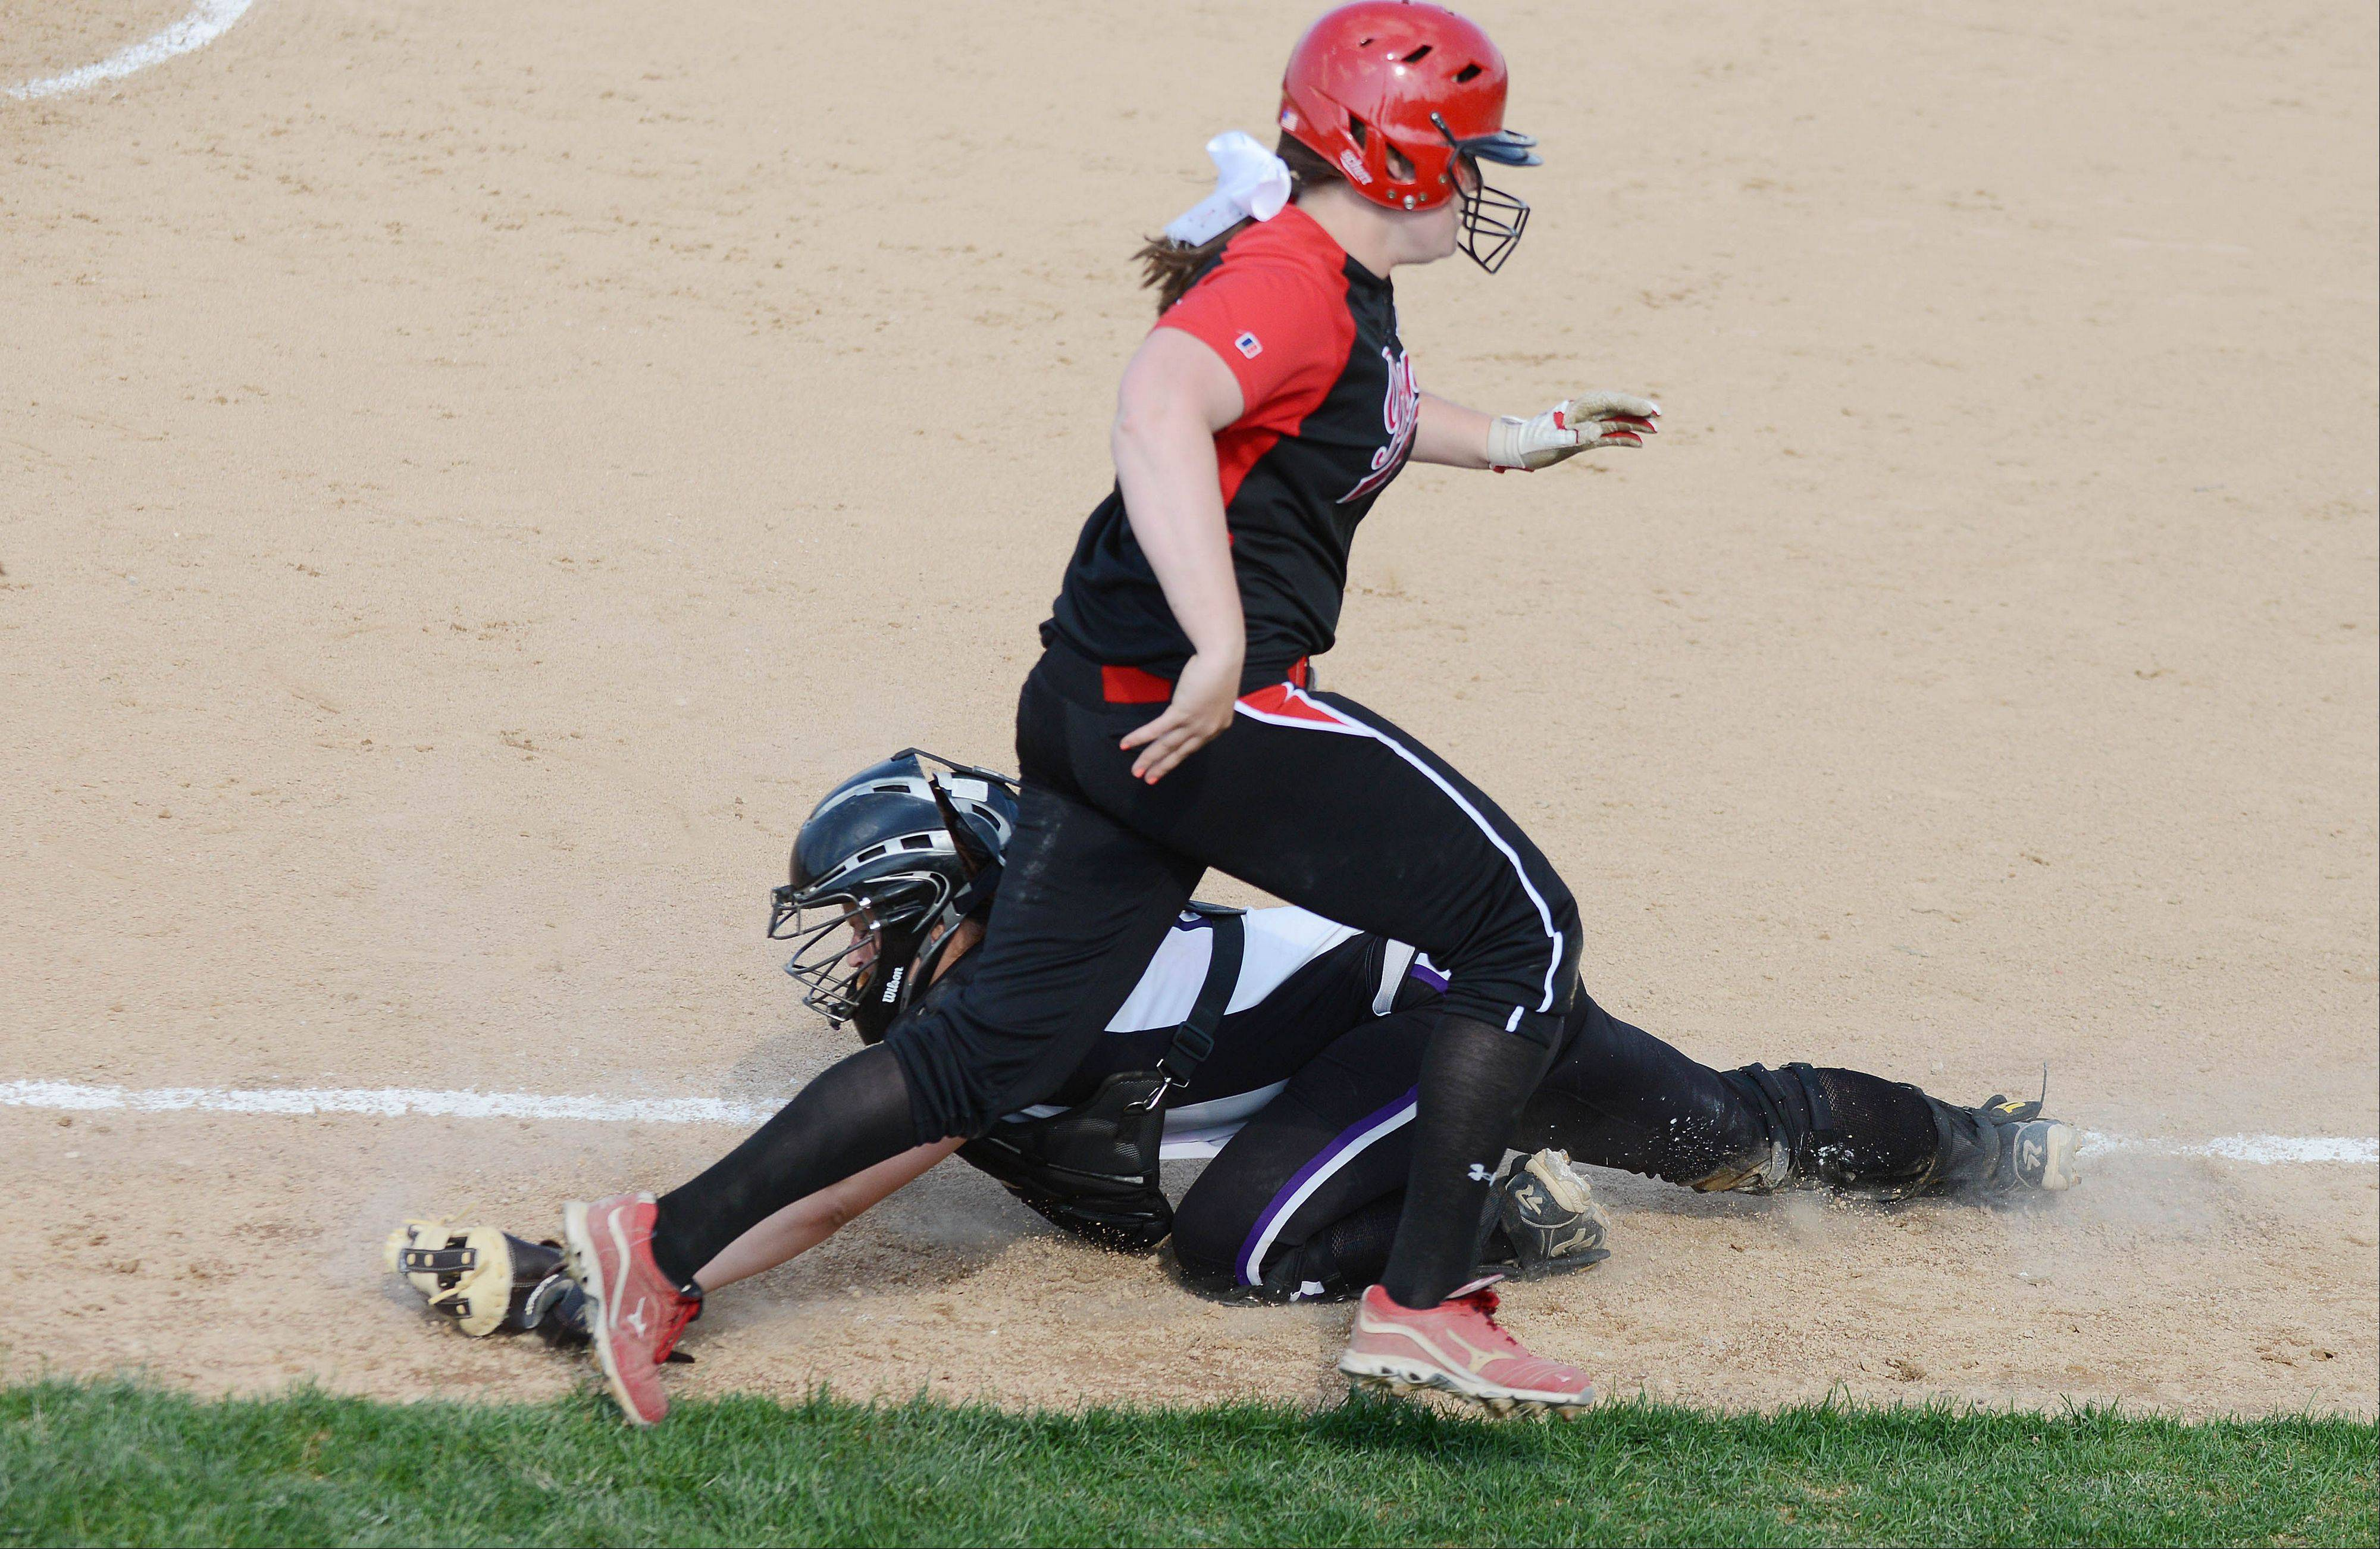 Julianne Rurka of Benet heads home while the Downers Grove North catcher reaches for the ball during the Class 4A Neuqua Valley sectional semifinals softball game Wednesday. She was safe.